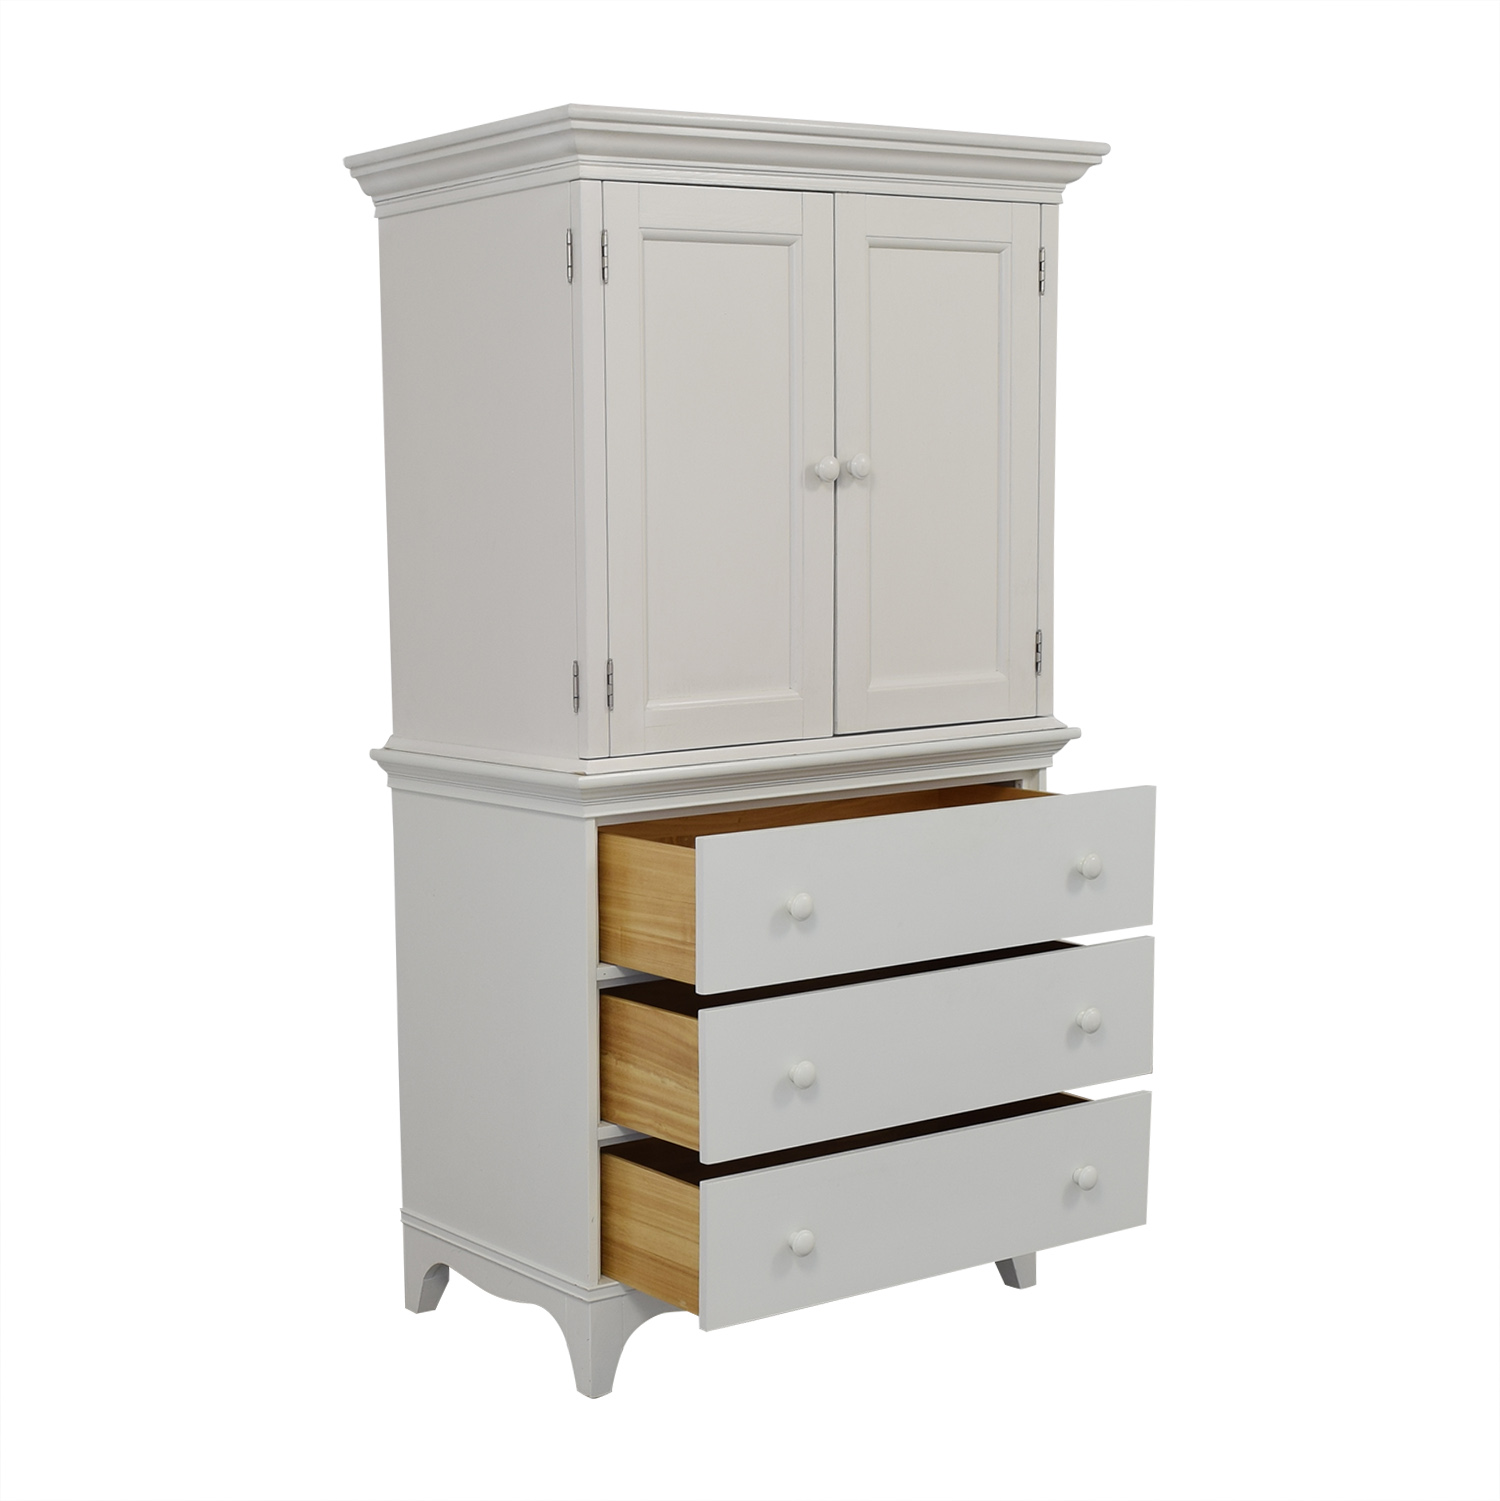 buy Crate & Barrel Crate & Barrel White Armoire online